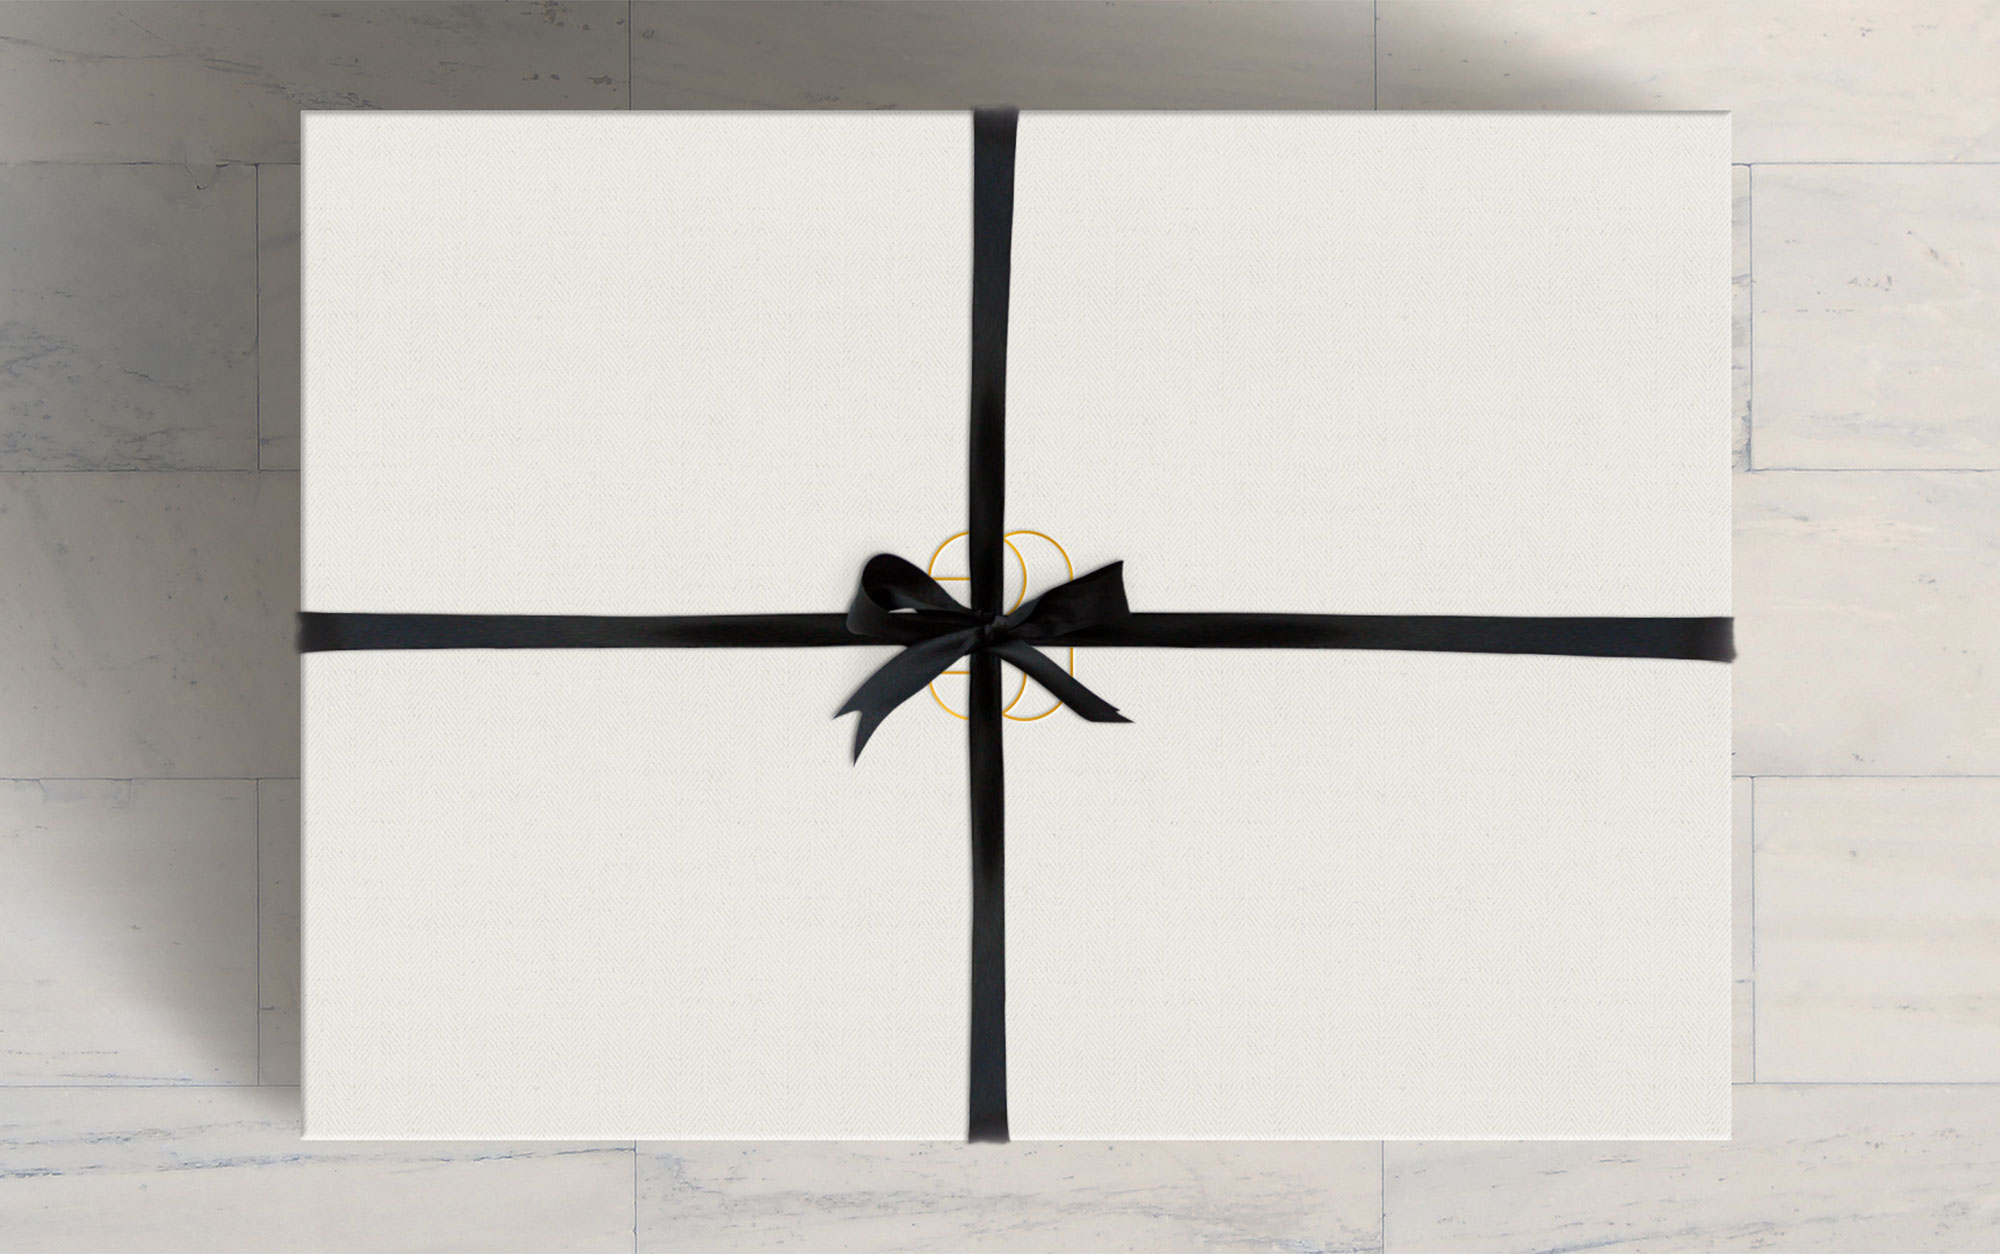 Packaging Design for 30 Park Place by The Four Seasons